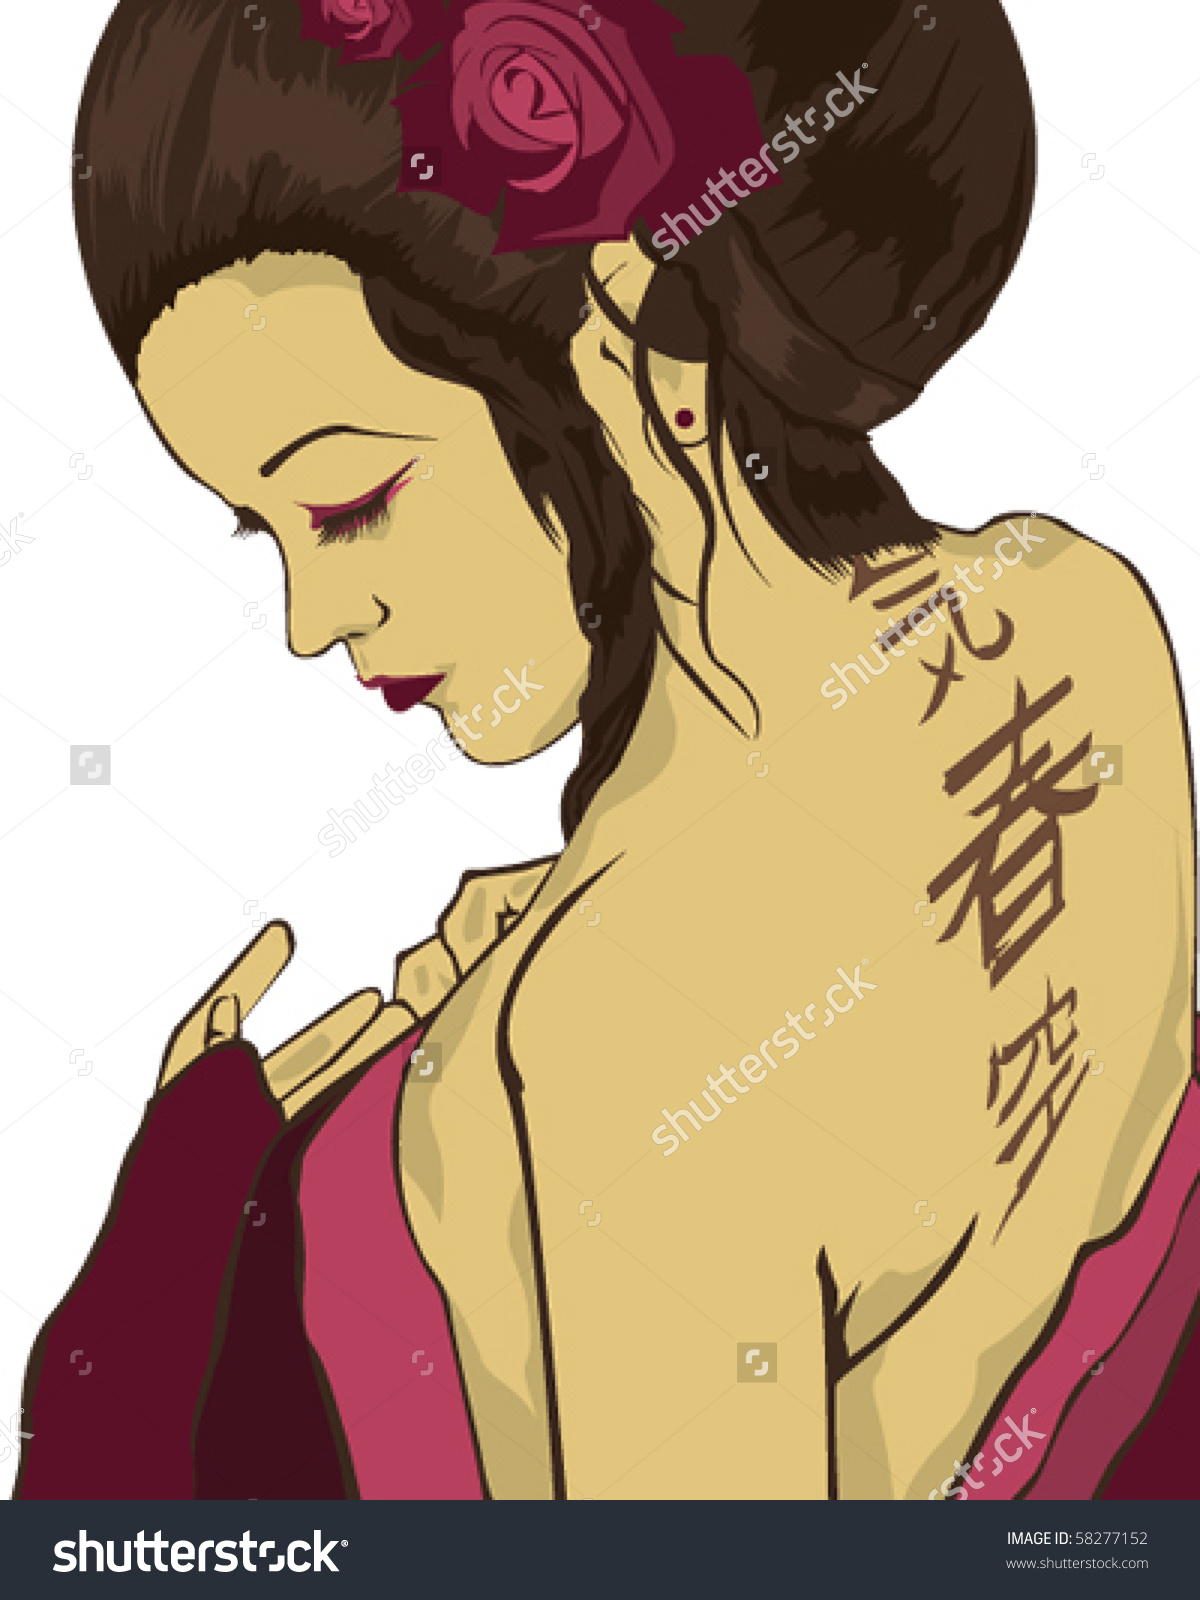 Geisha Stock Vector Illustration 58277152 : Shutterstock.